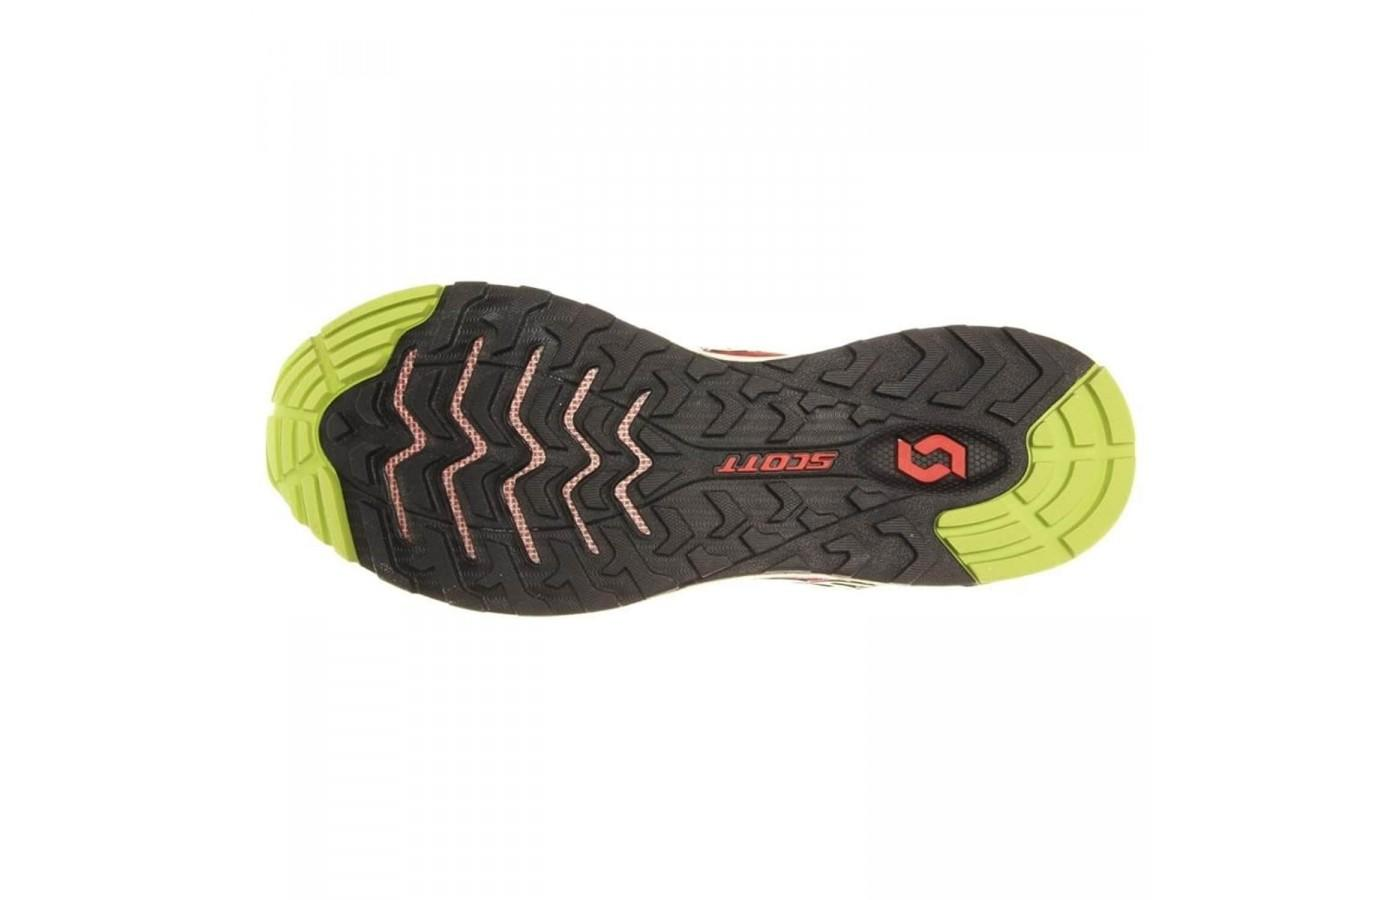 Protective and gripping sole of the Scott T2 Kinabalu 2.0